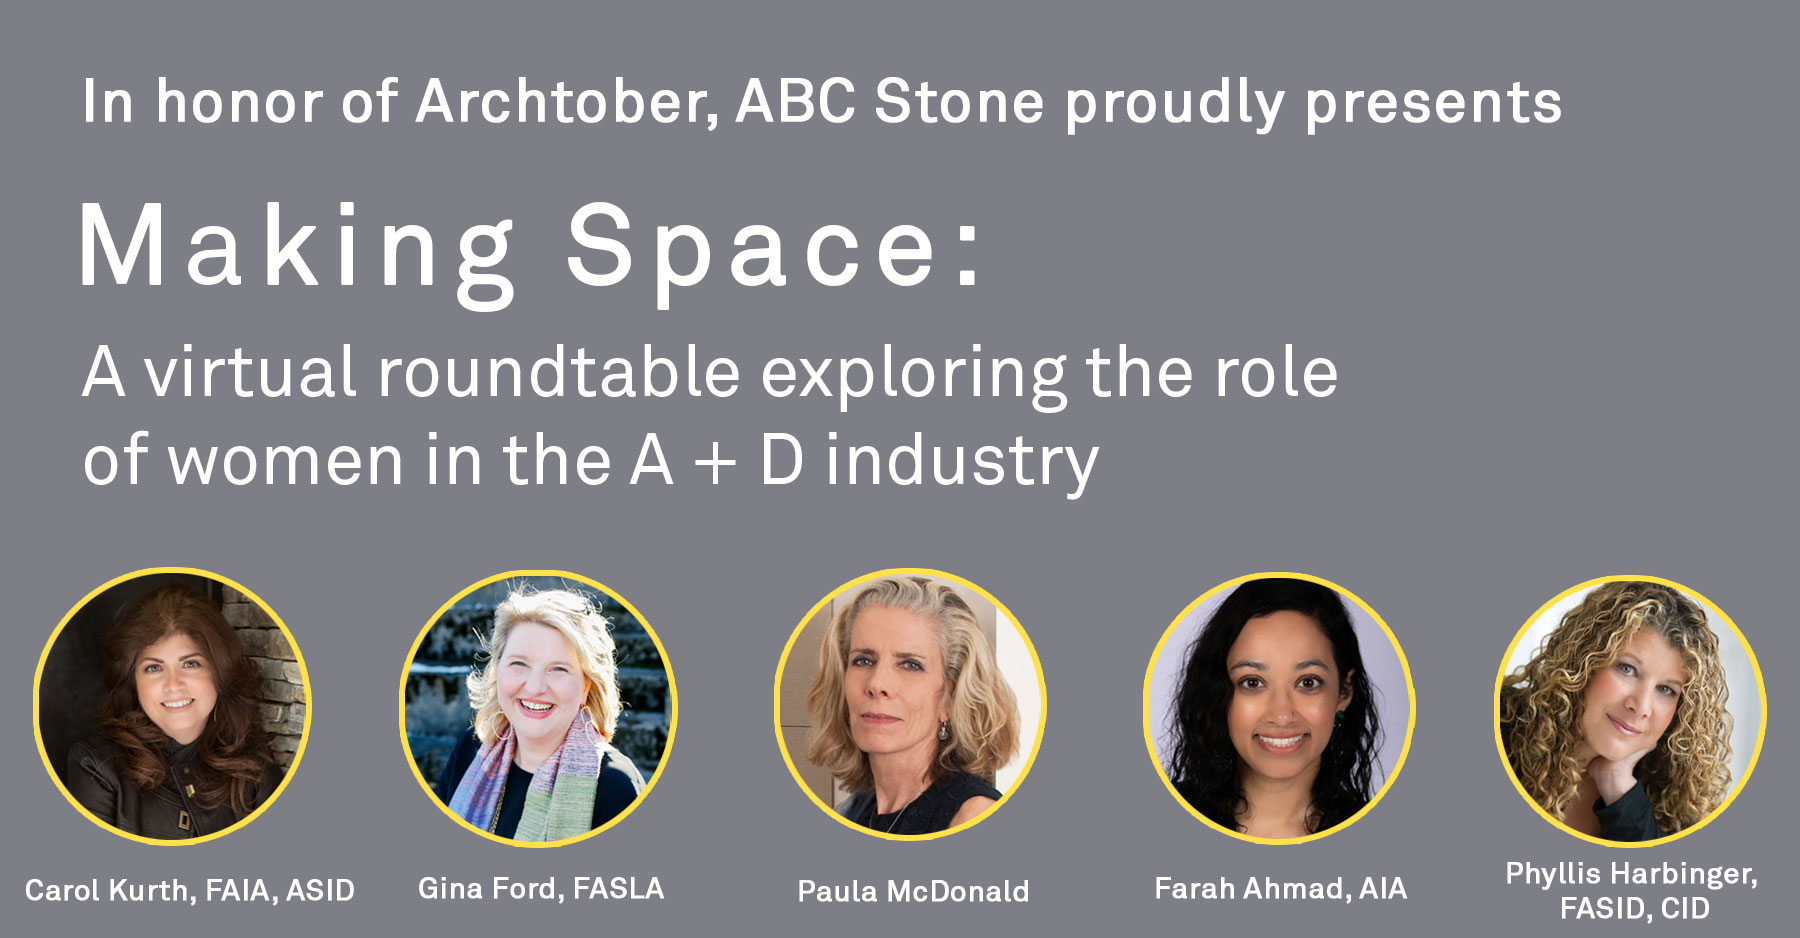 Making Space: A virtual roundtable exploring the role of women in the A+D industry